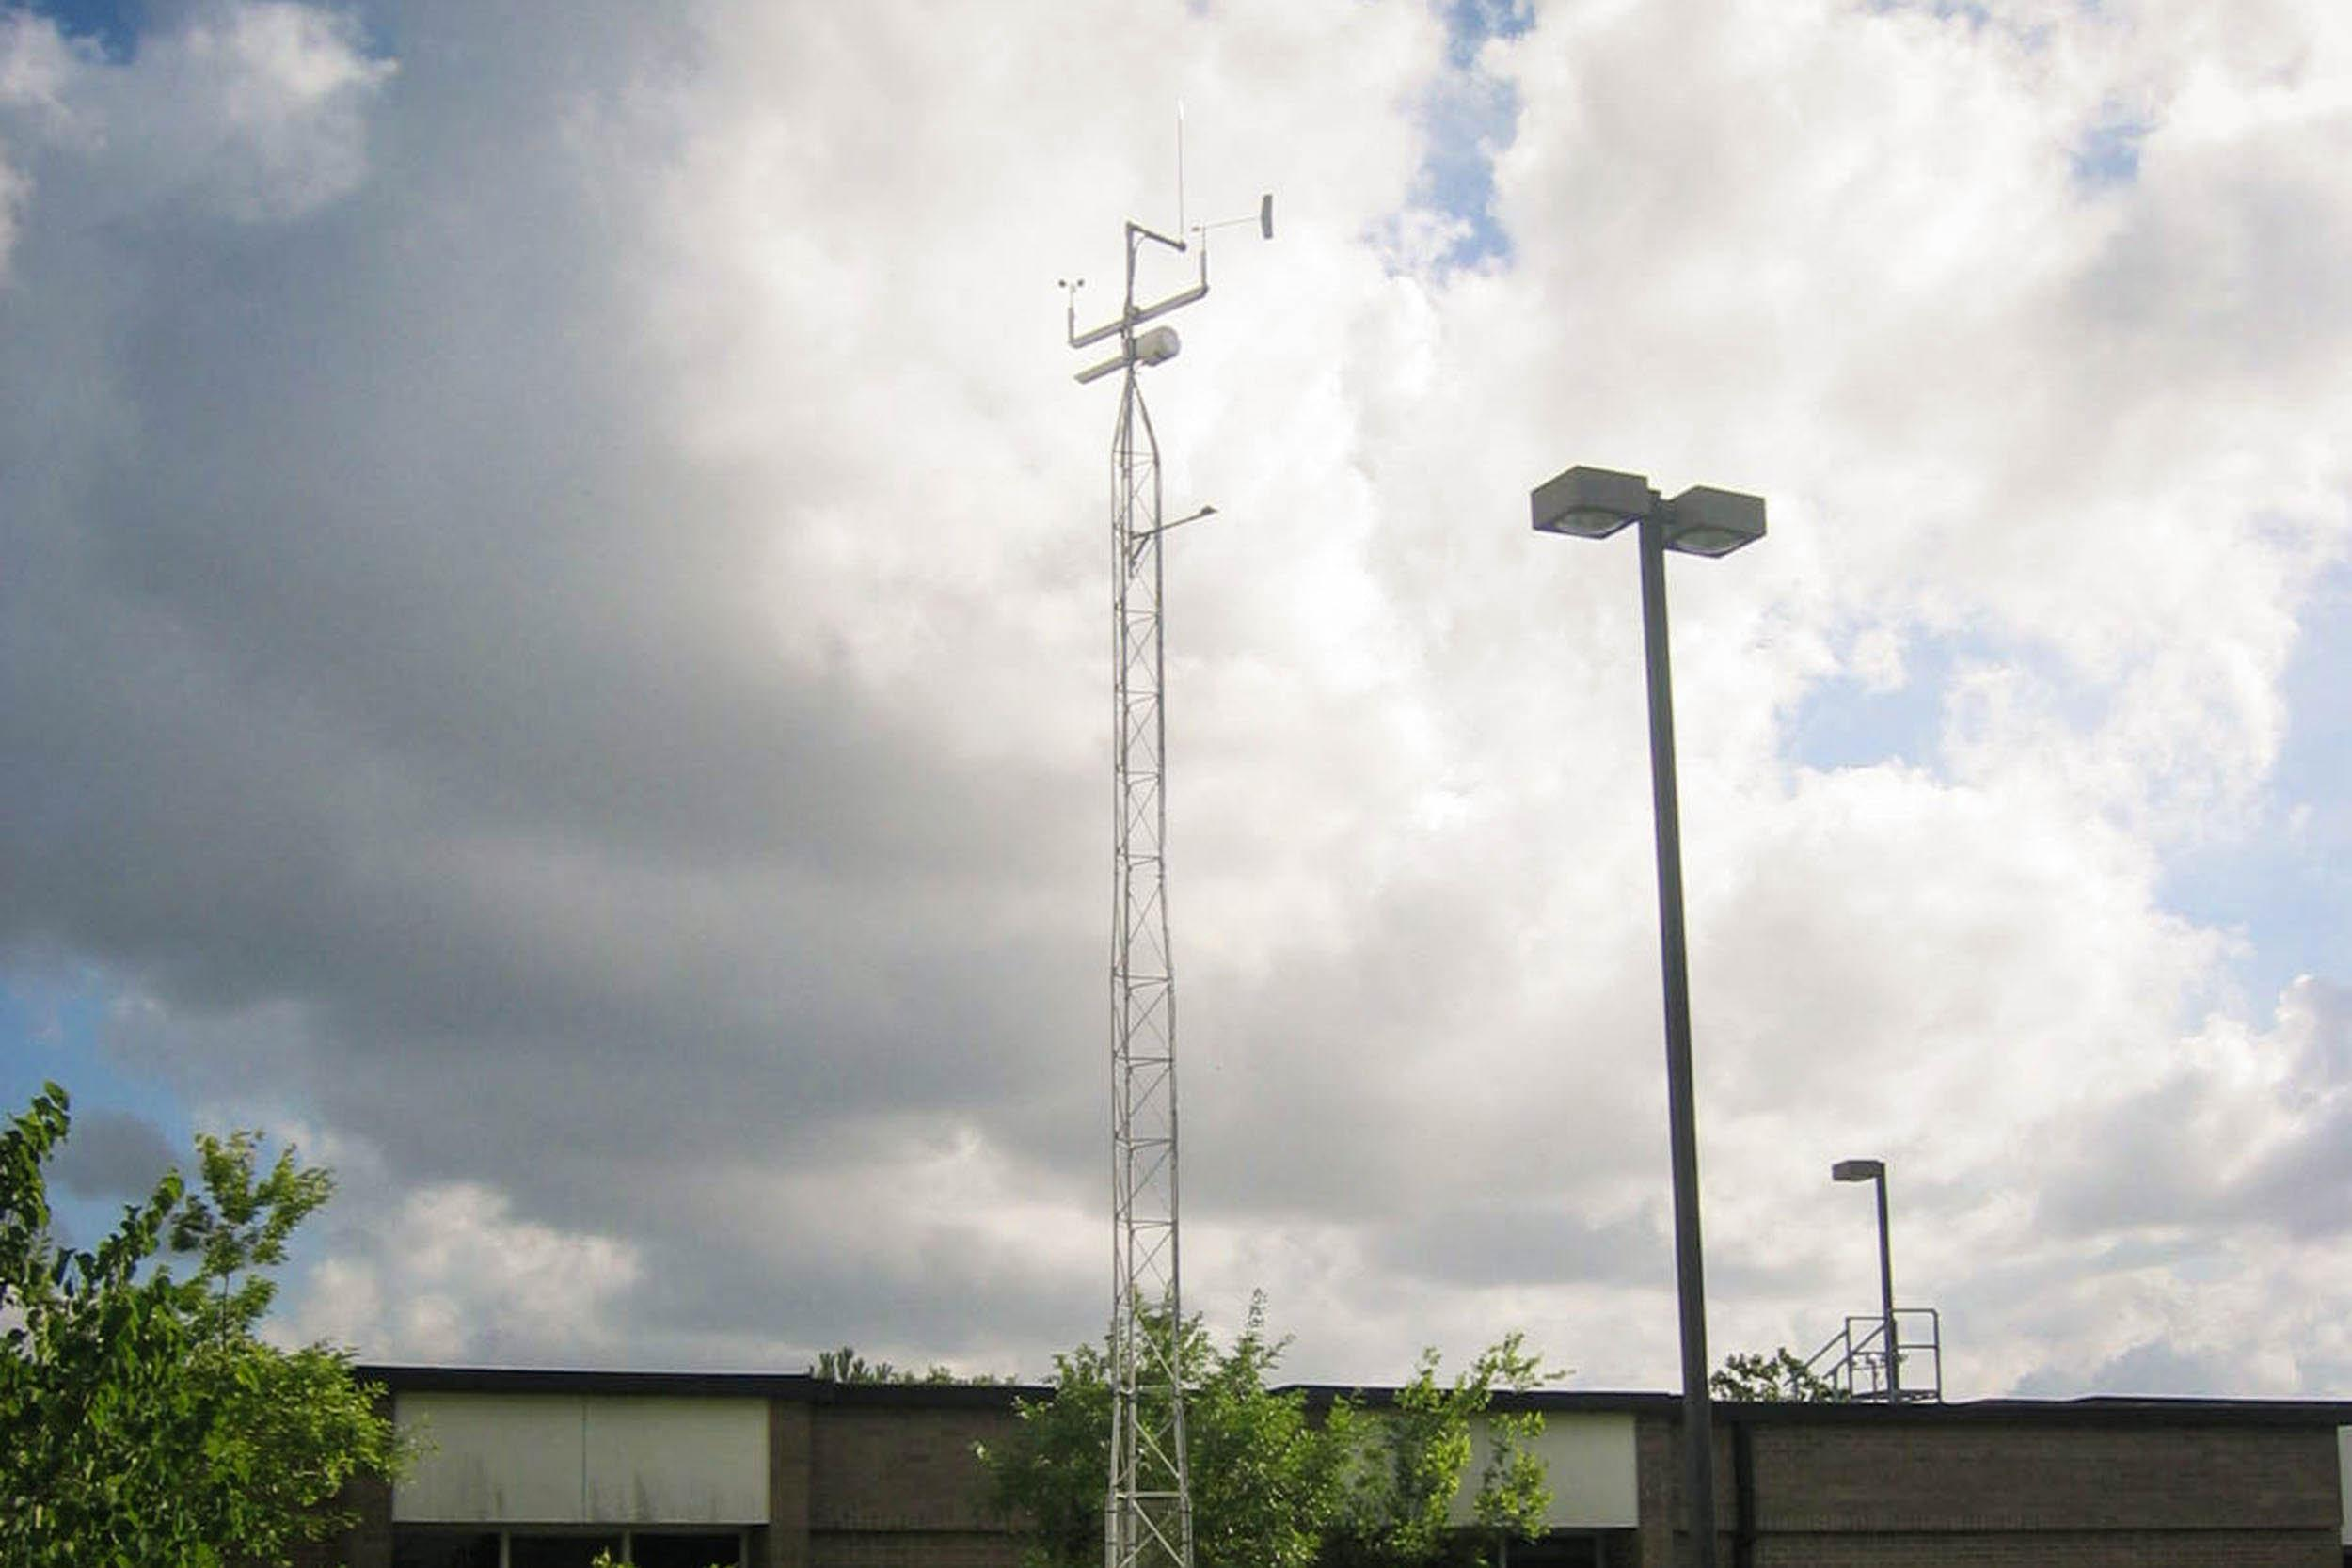 Meteorological tower and equipment at Clear Brook High School allowed the students to study the weather with a complete set of real time parameters.